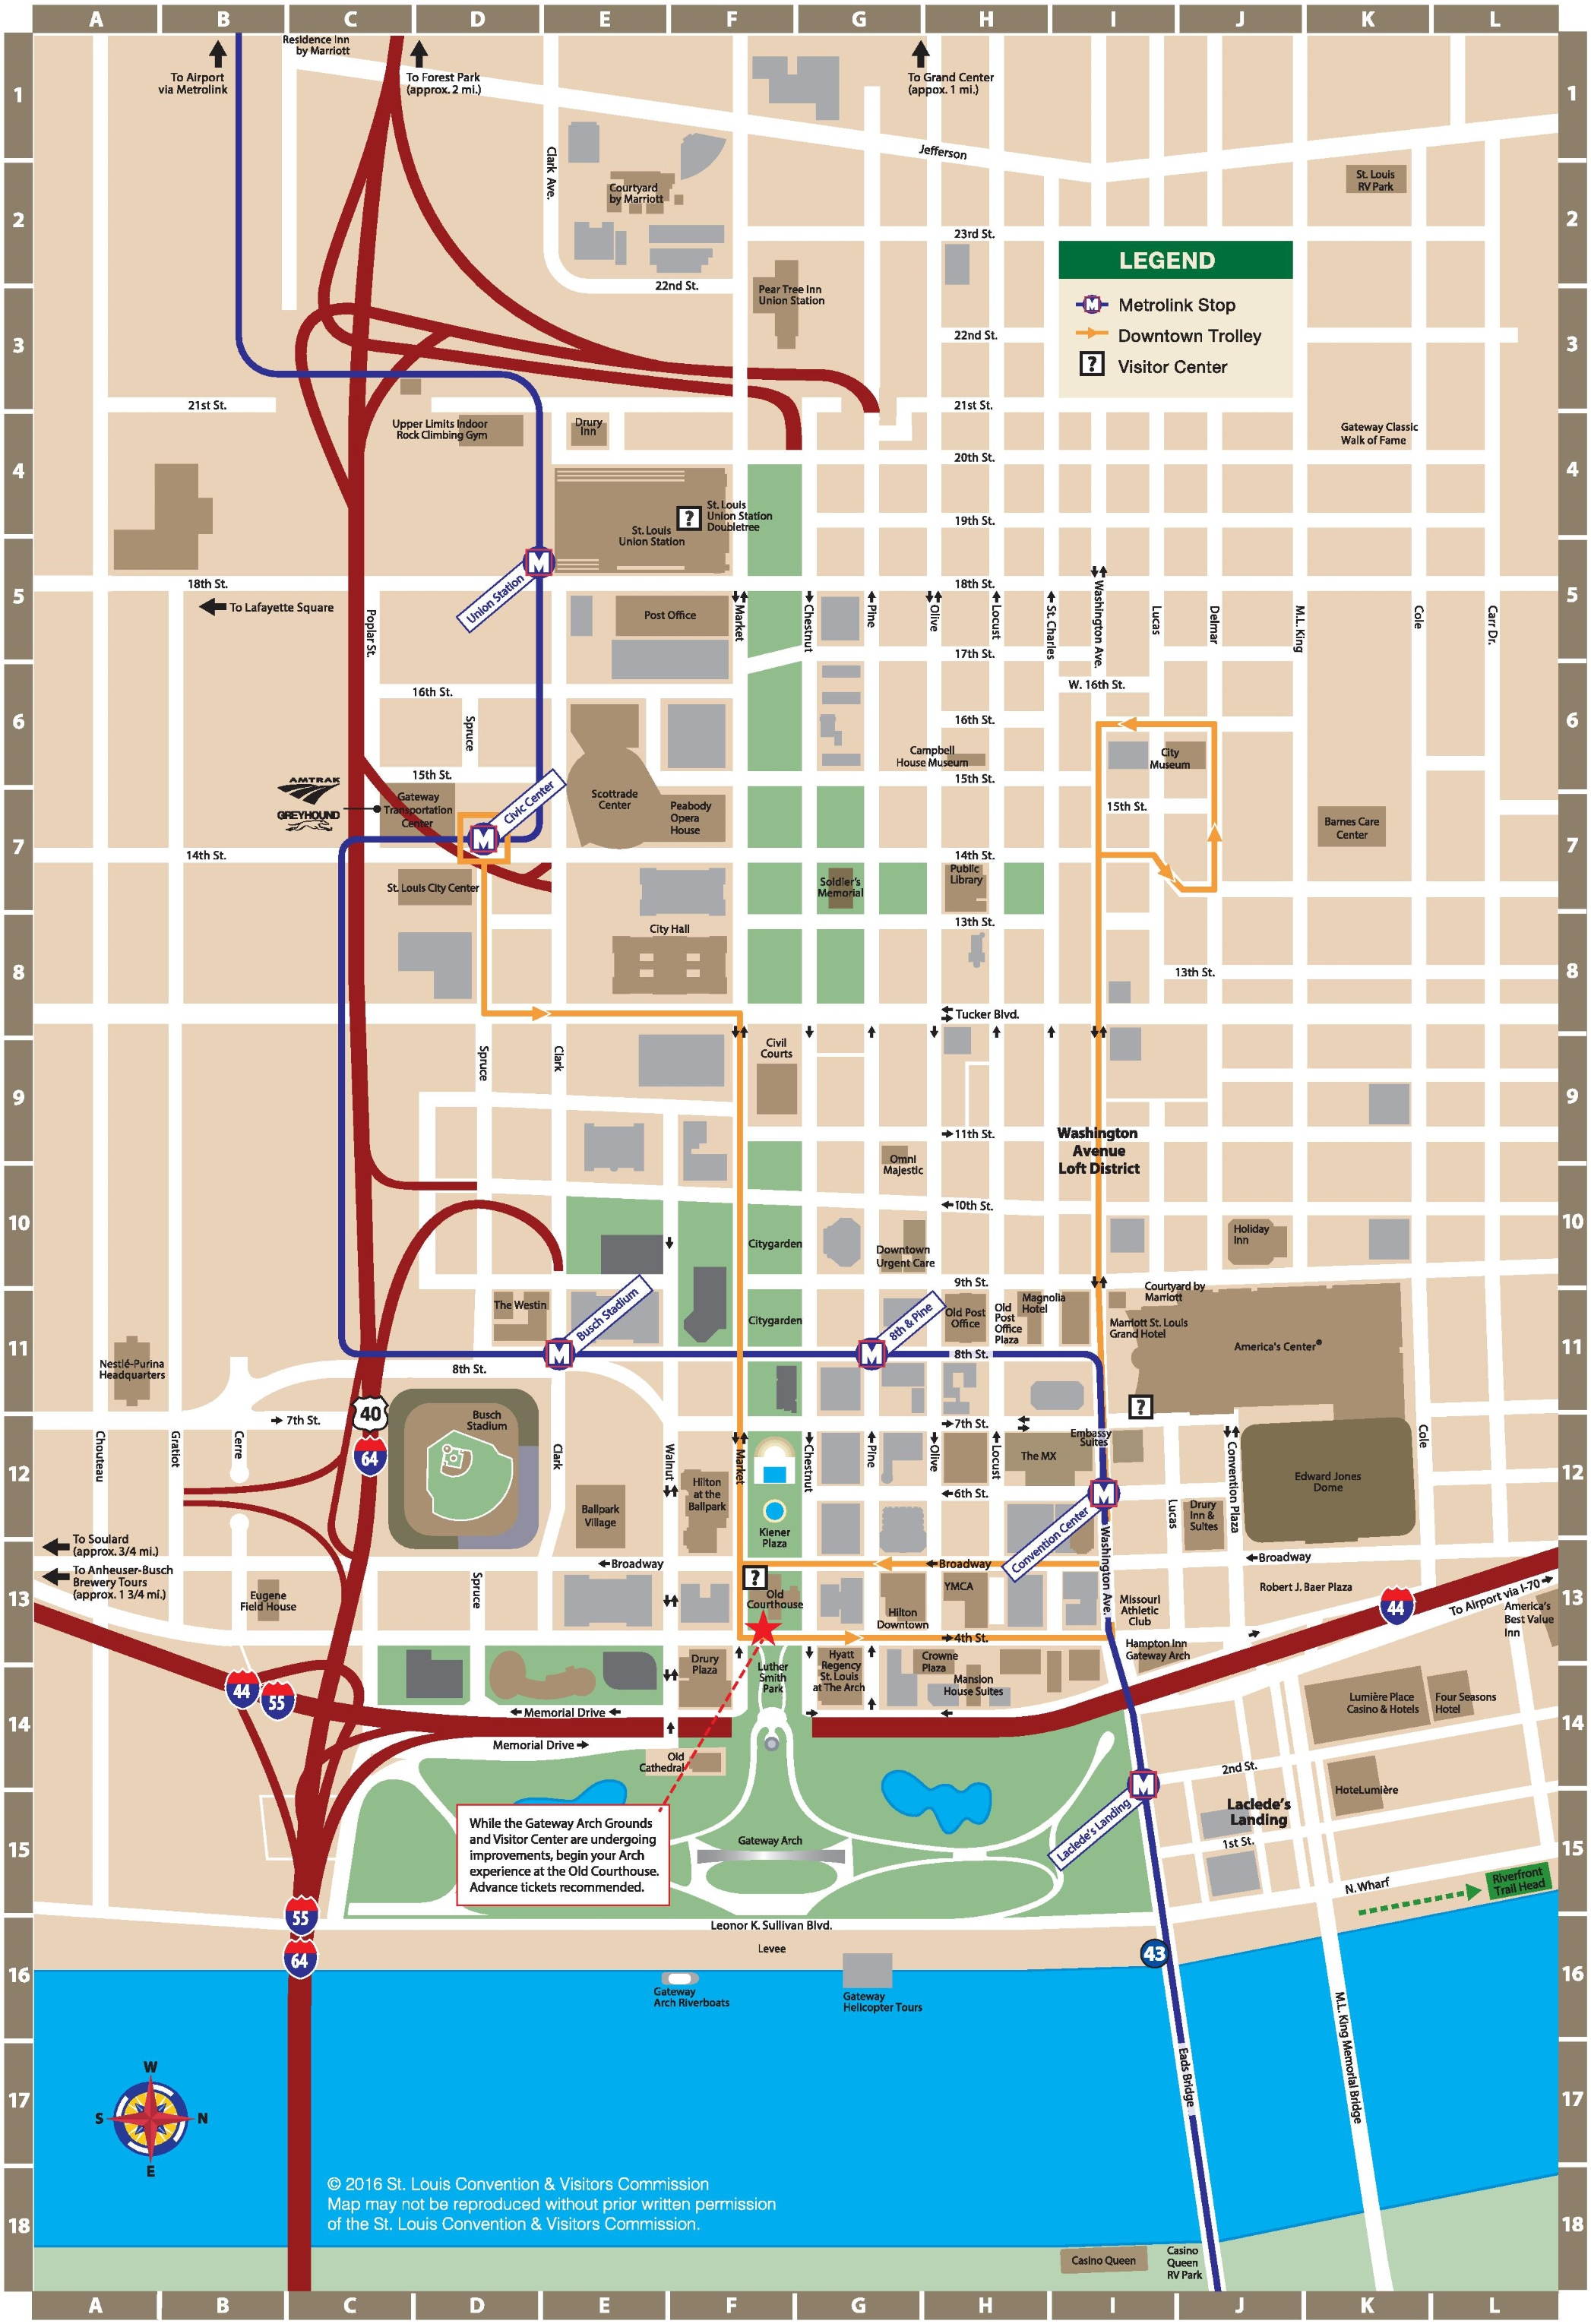 St Louis downtown map